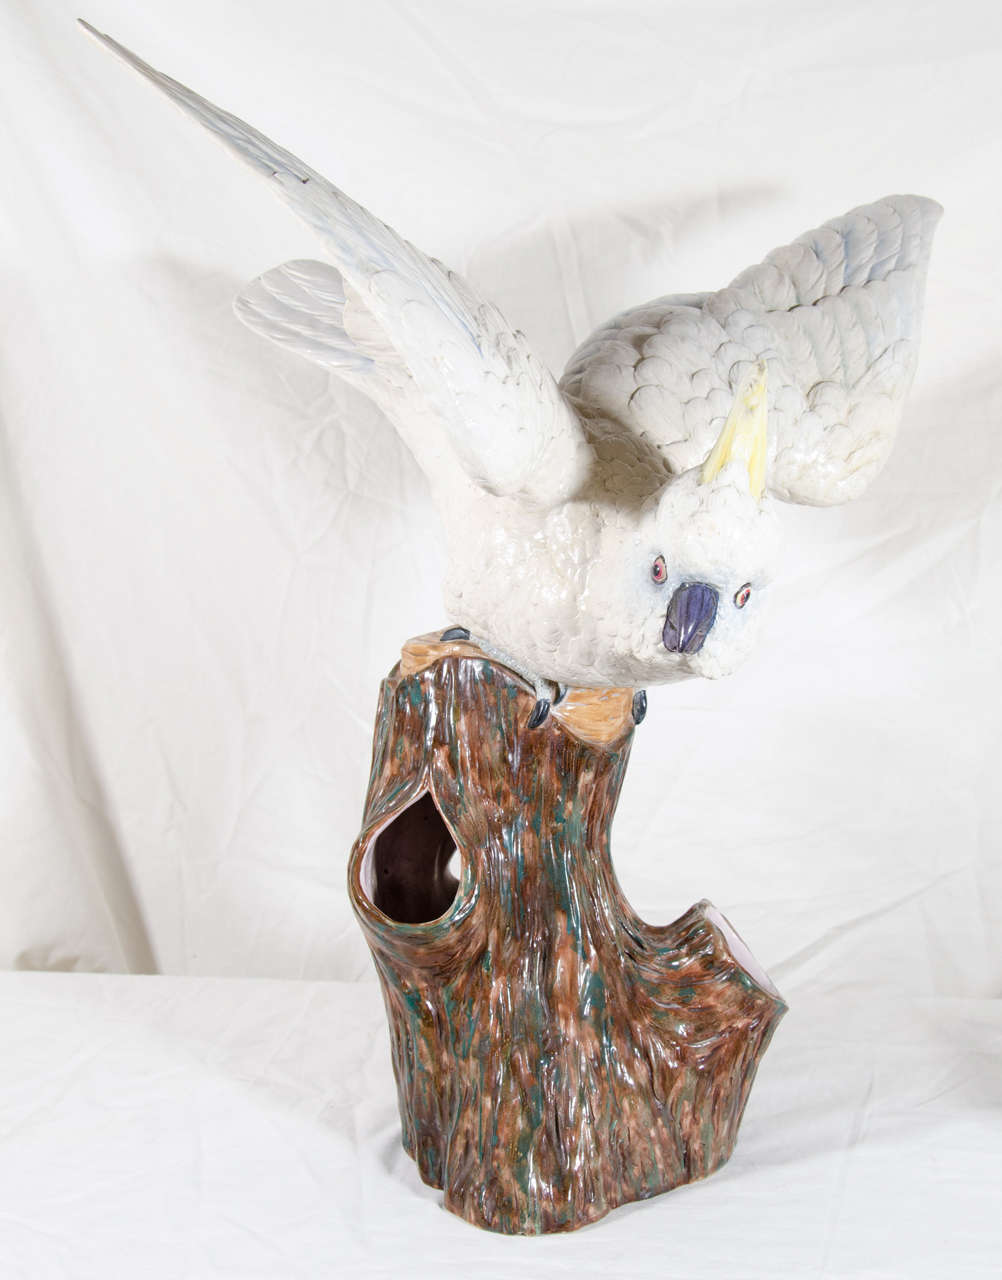 A large antique porcelain sculpture of a cockatoo made by Royal Worcester Porcelain in the last quarter of the 19th century. The sculpture is the size of a live cockatoo. Modeled as if it is about to take flight, the bird looks straight at the